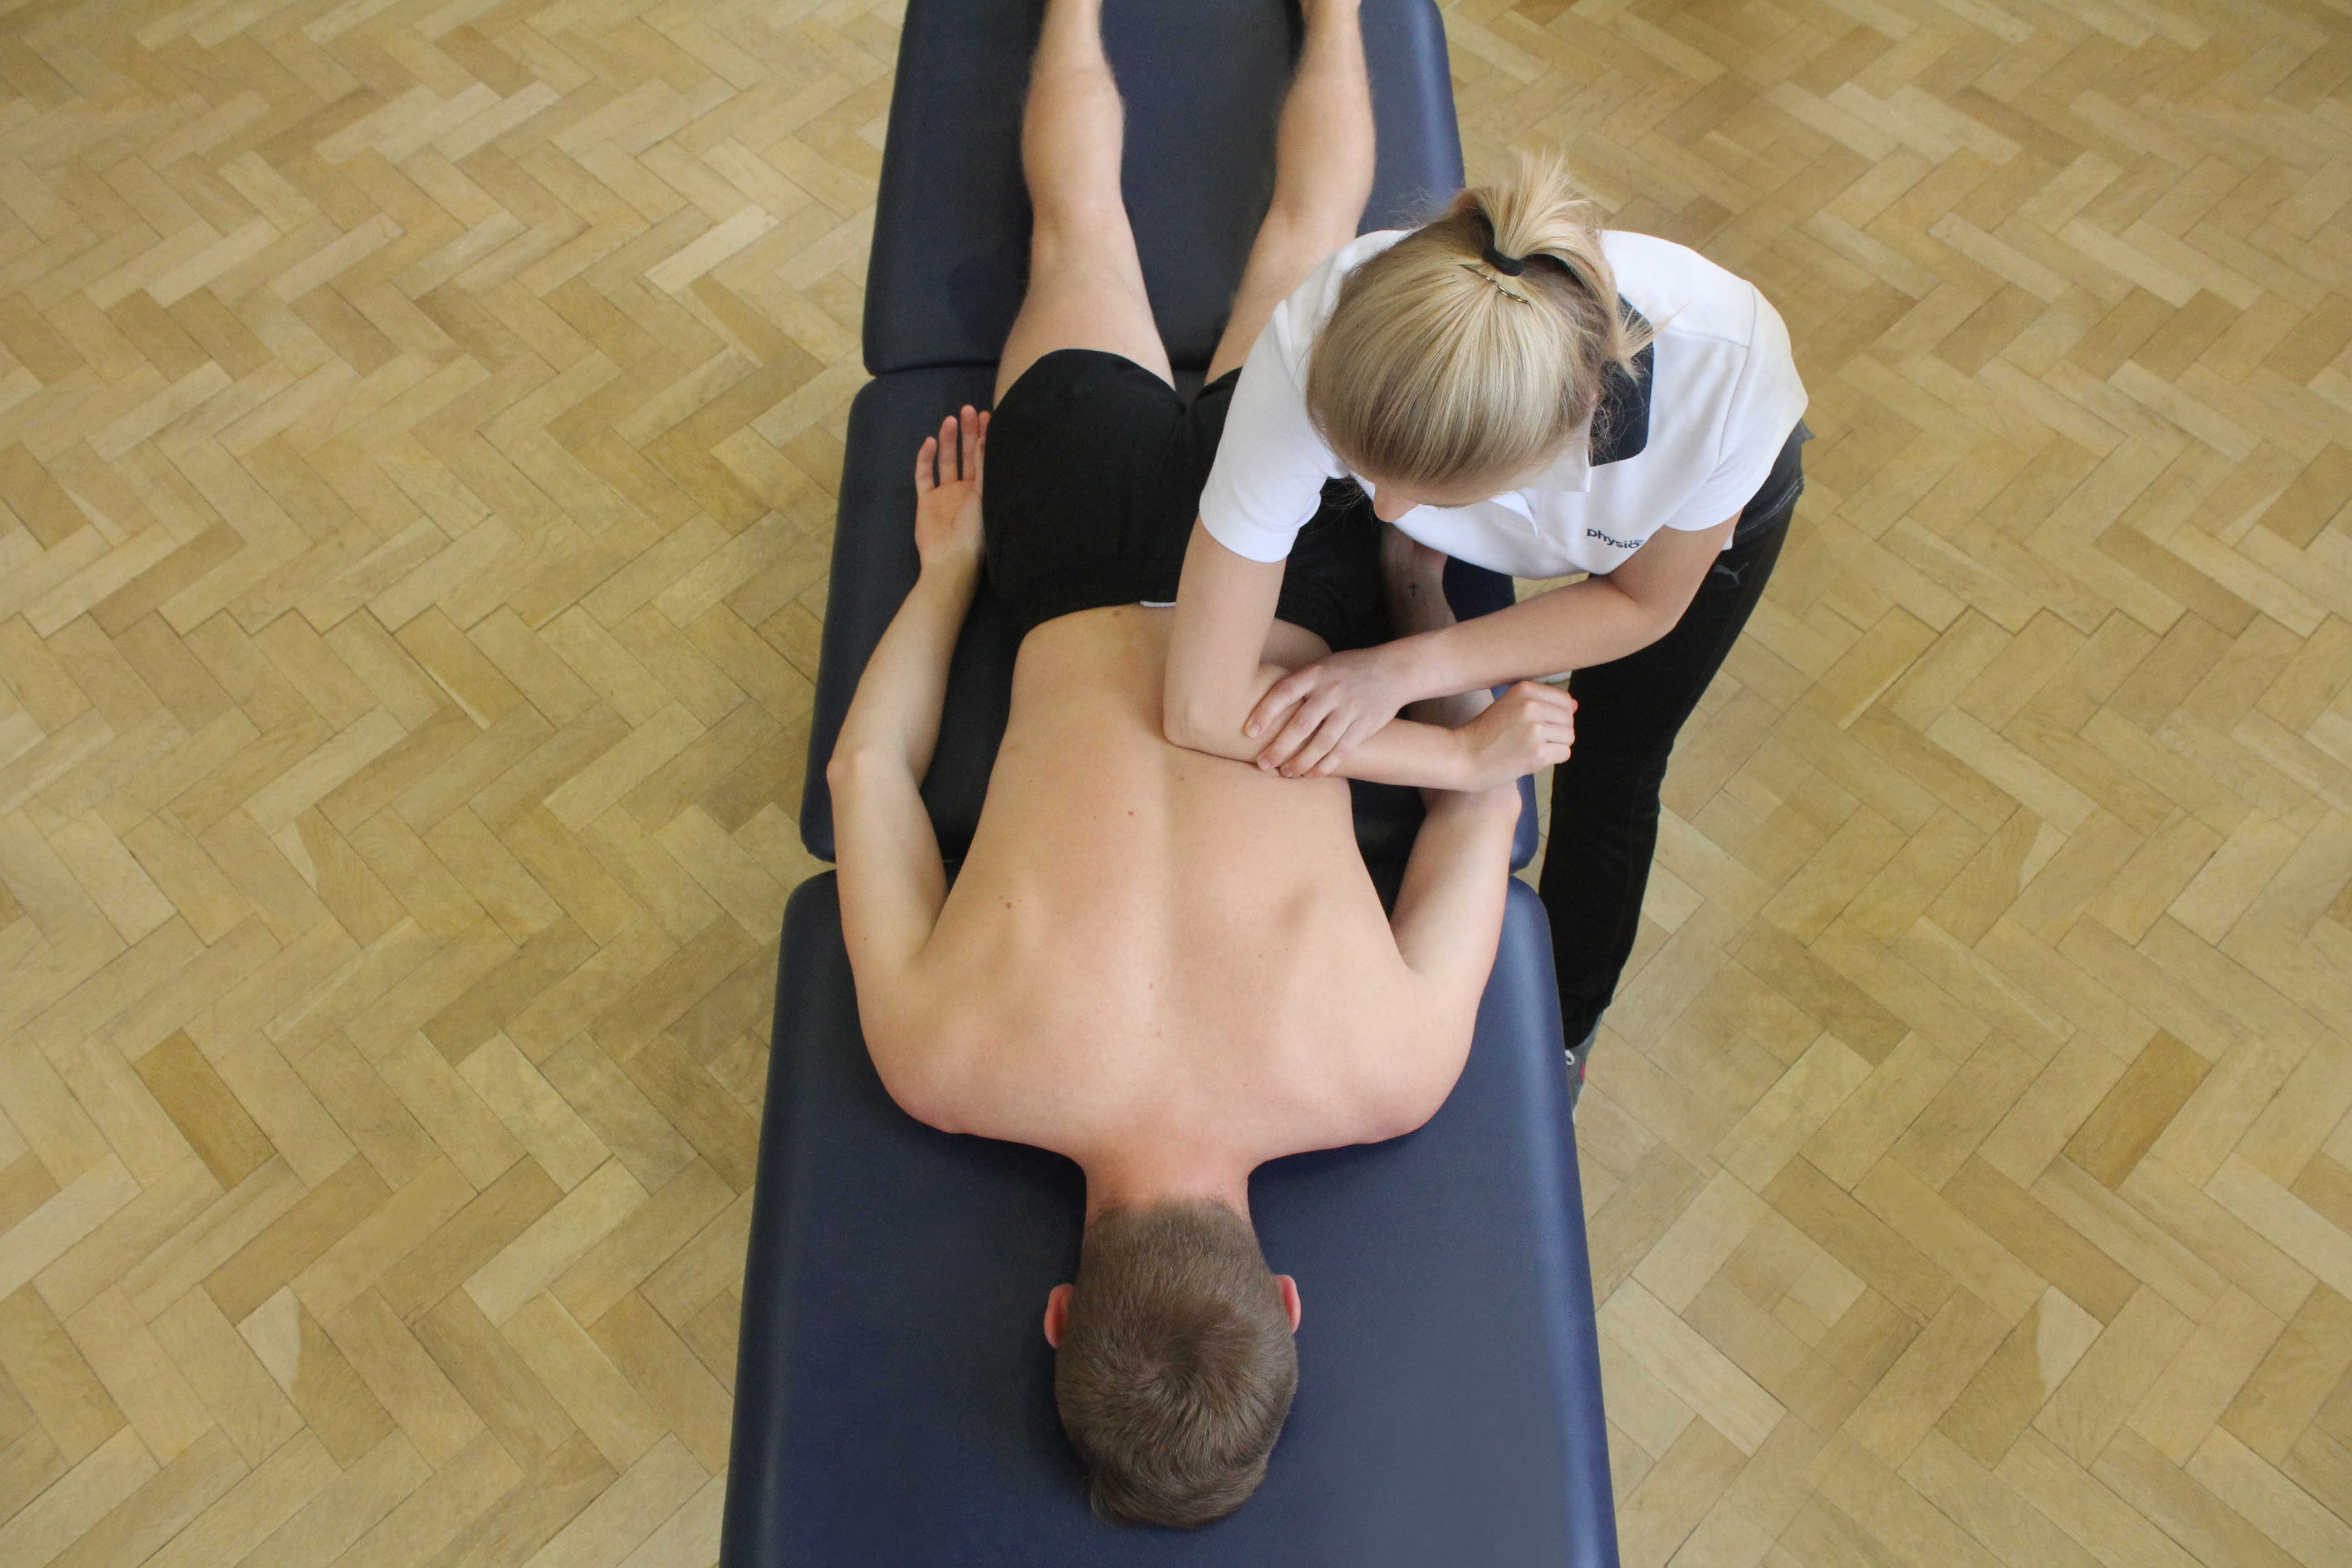 Trigger point massage of the muscle and connective tissues in the upper back